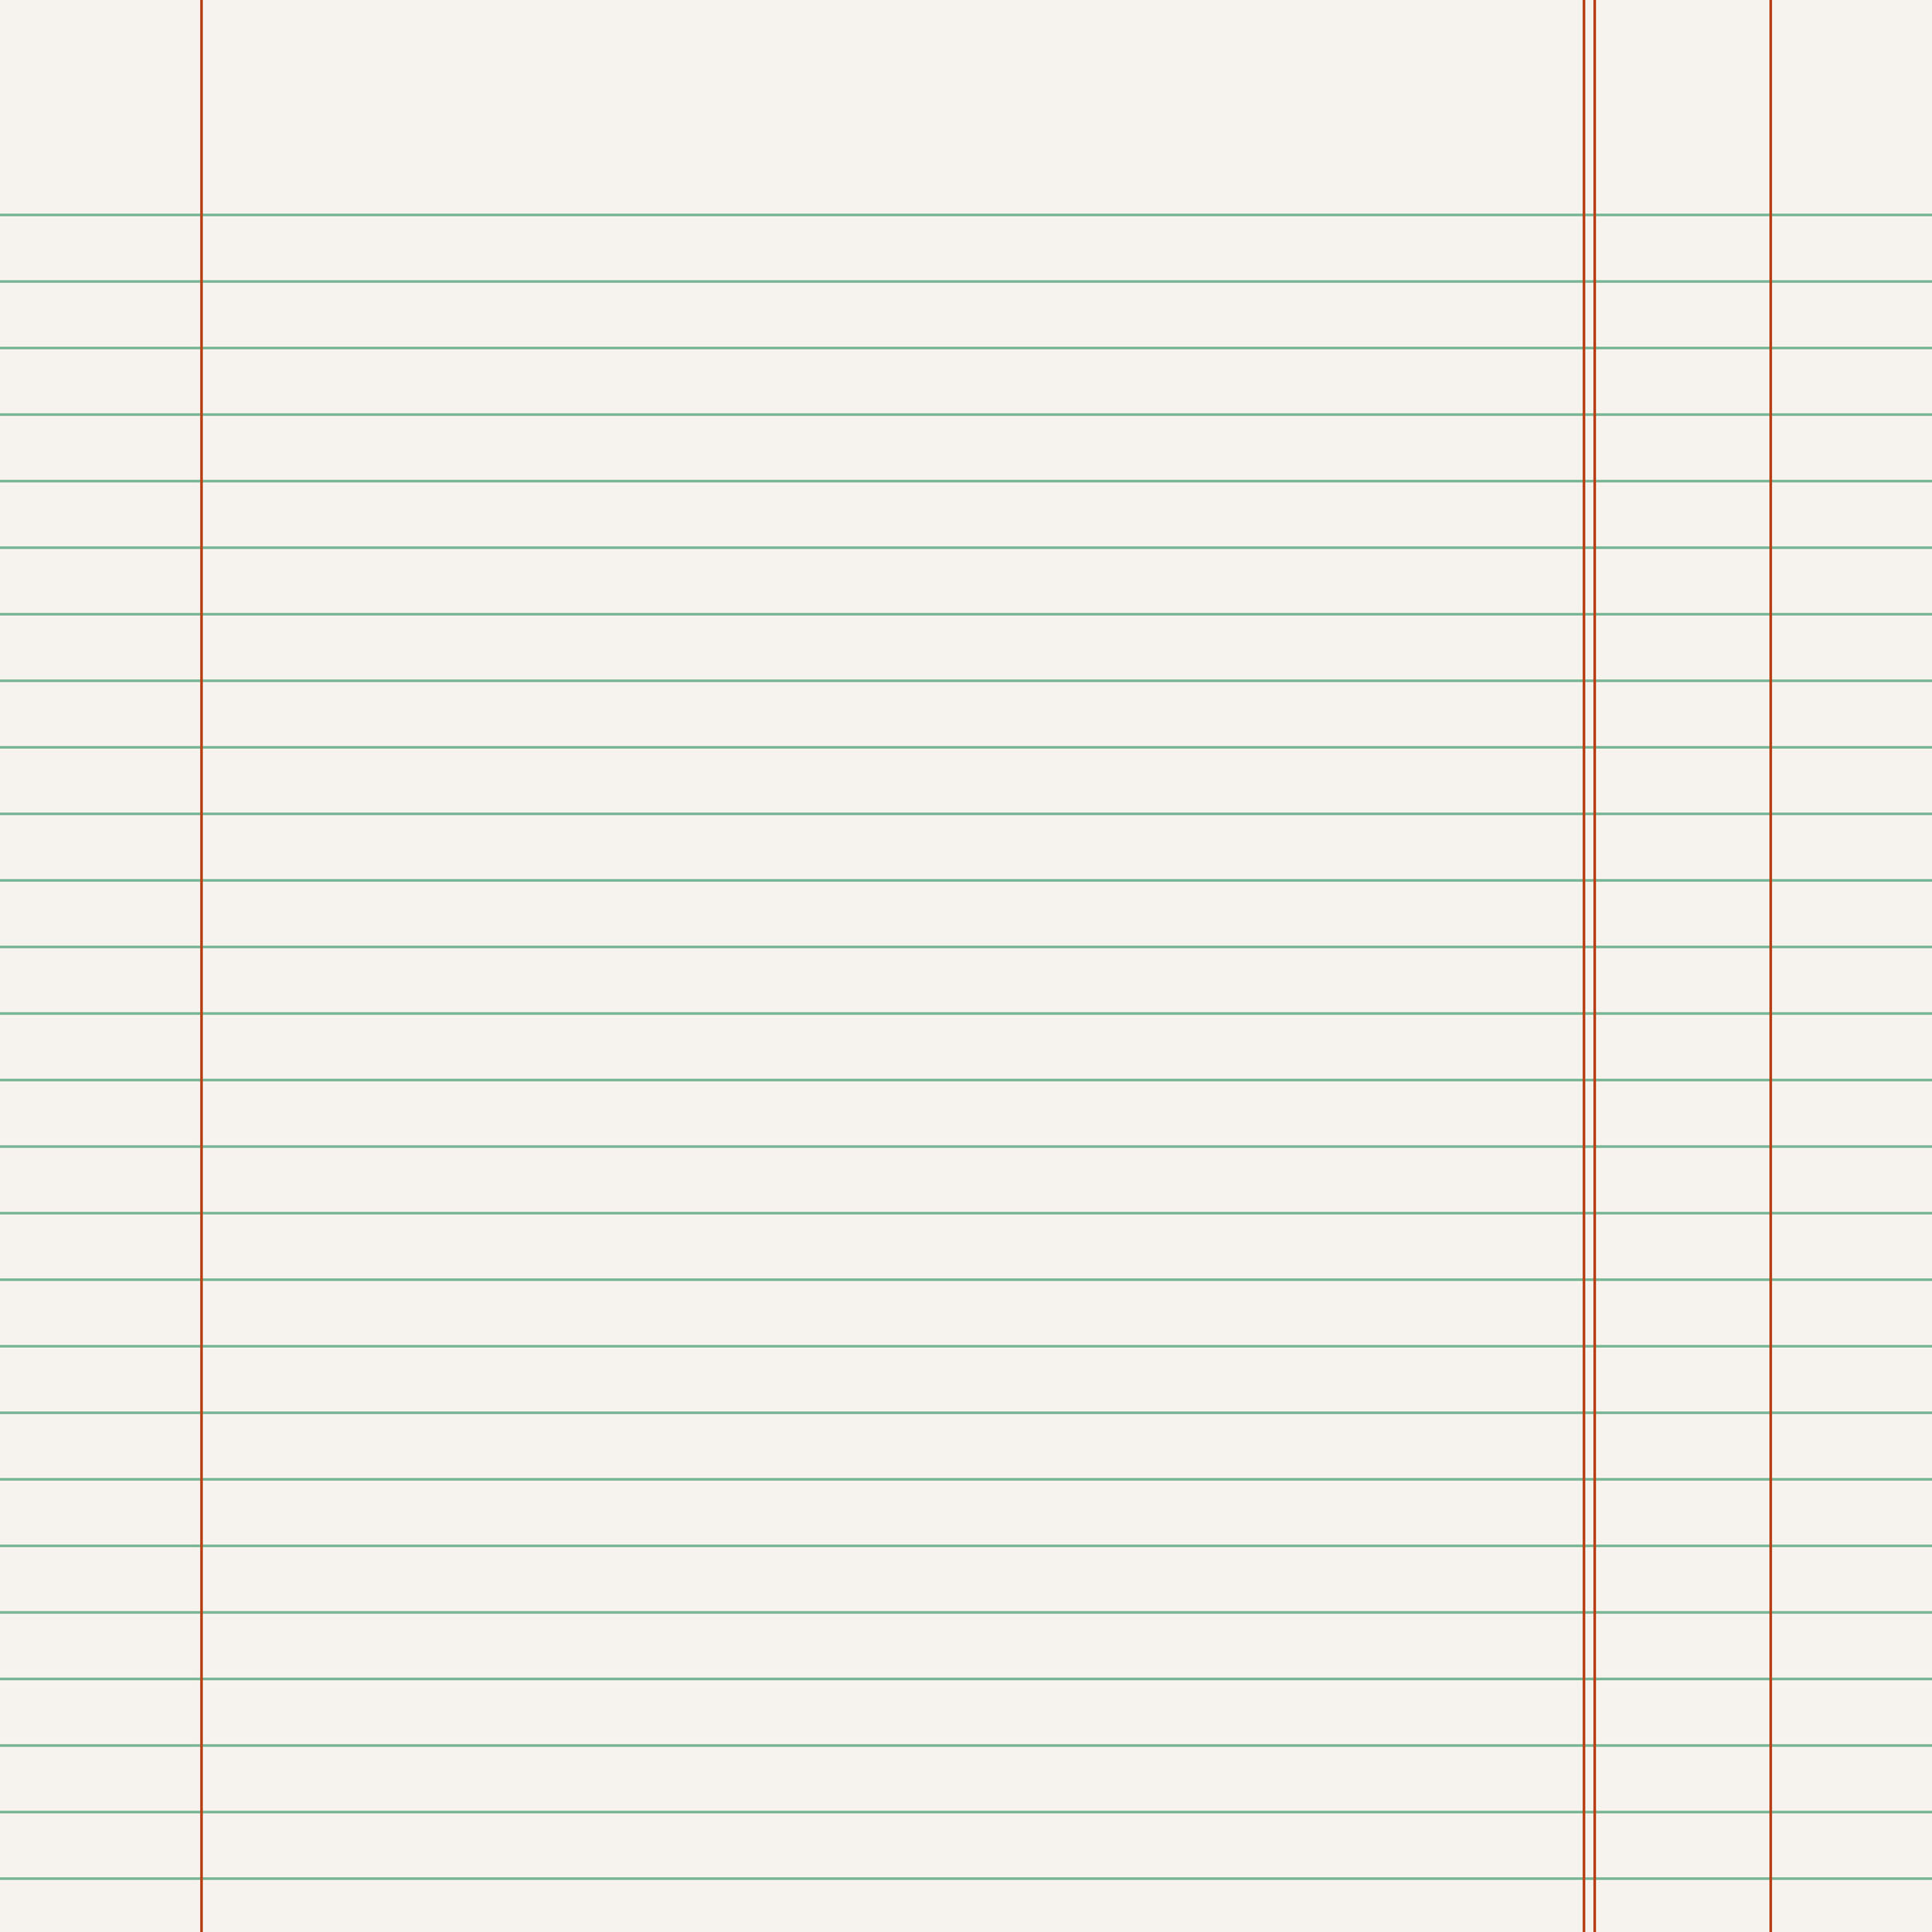 Paper grid background texture, lined paper image